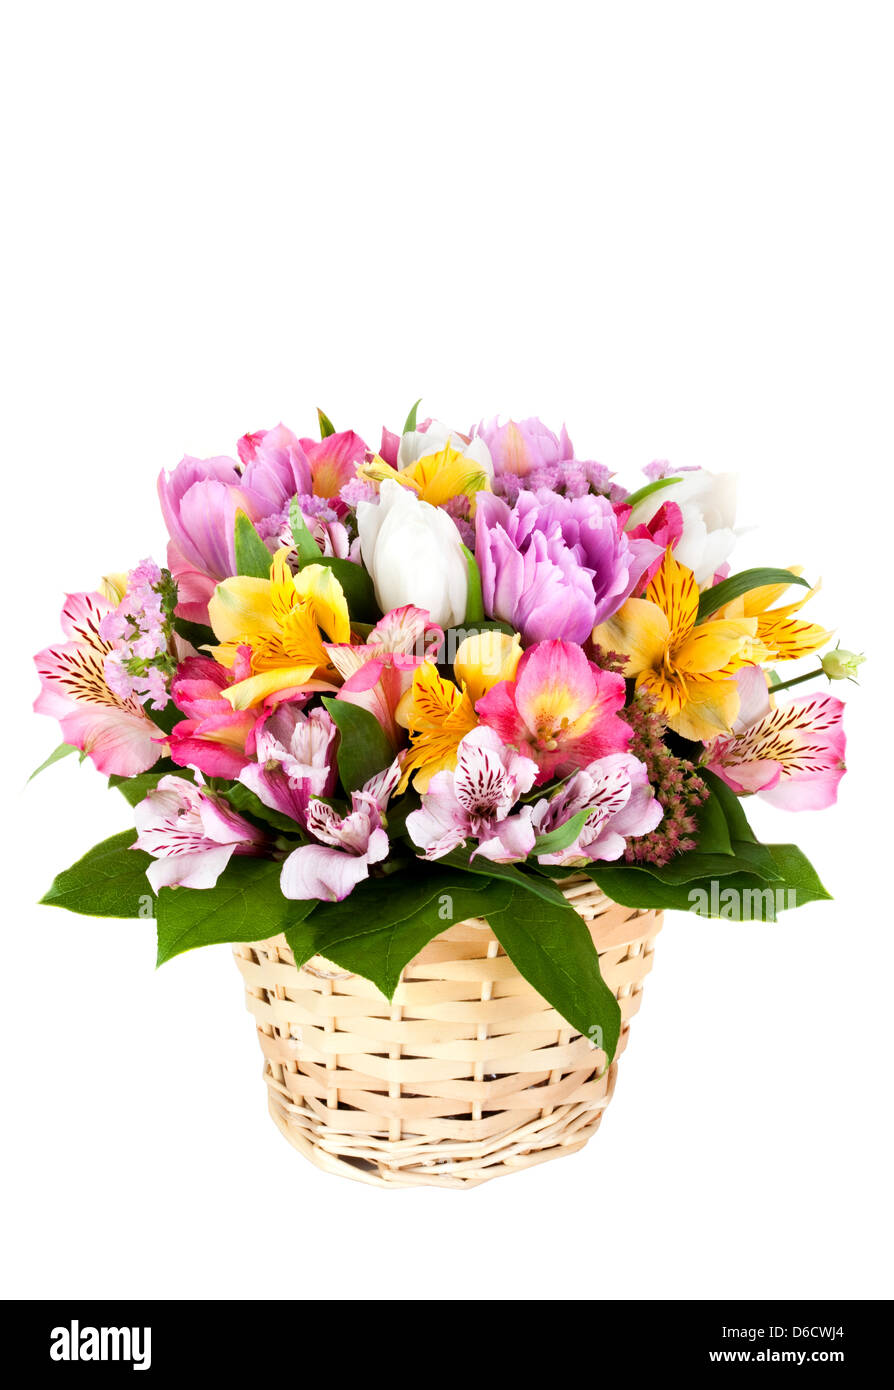 Bouquet from different bright colors - Stock Image